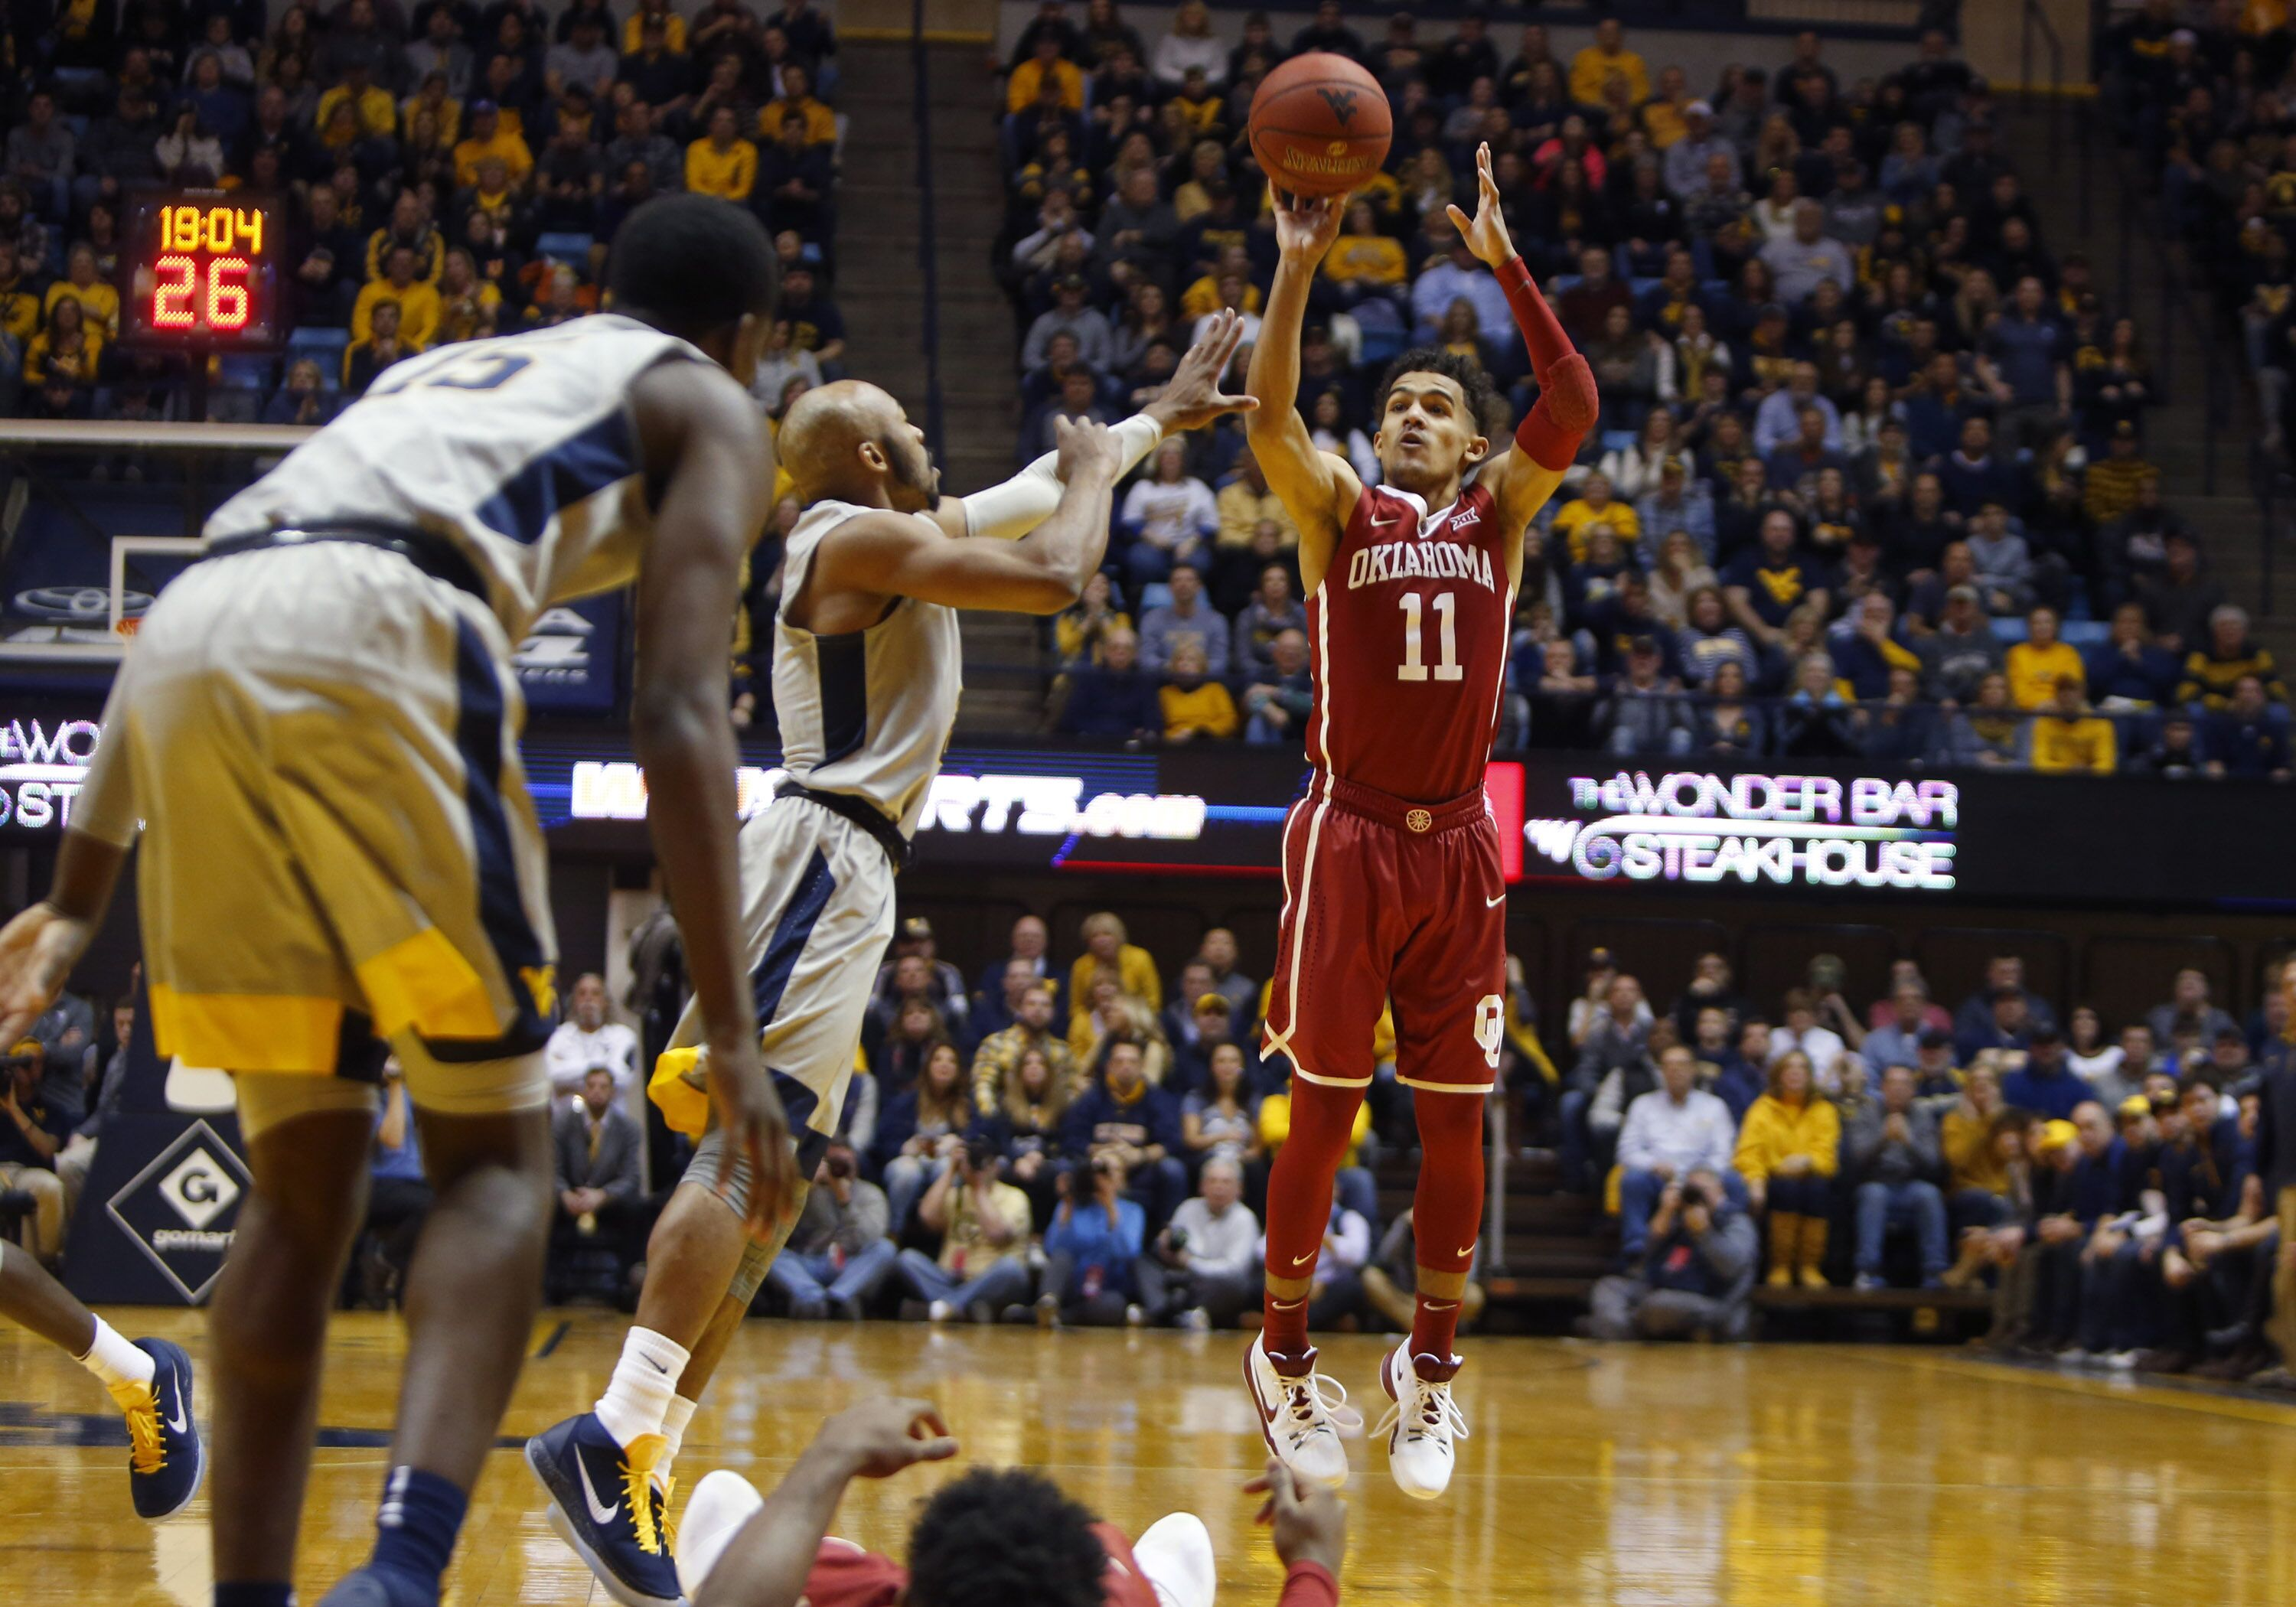 2018 Nba Draft Big Board 4 0 Trae Young Continues To Soar Page 3